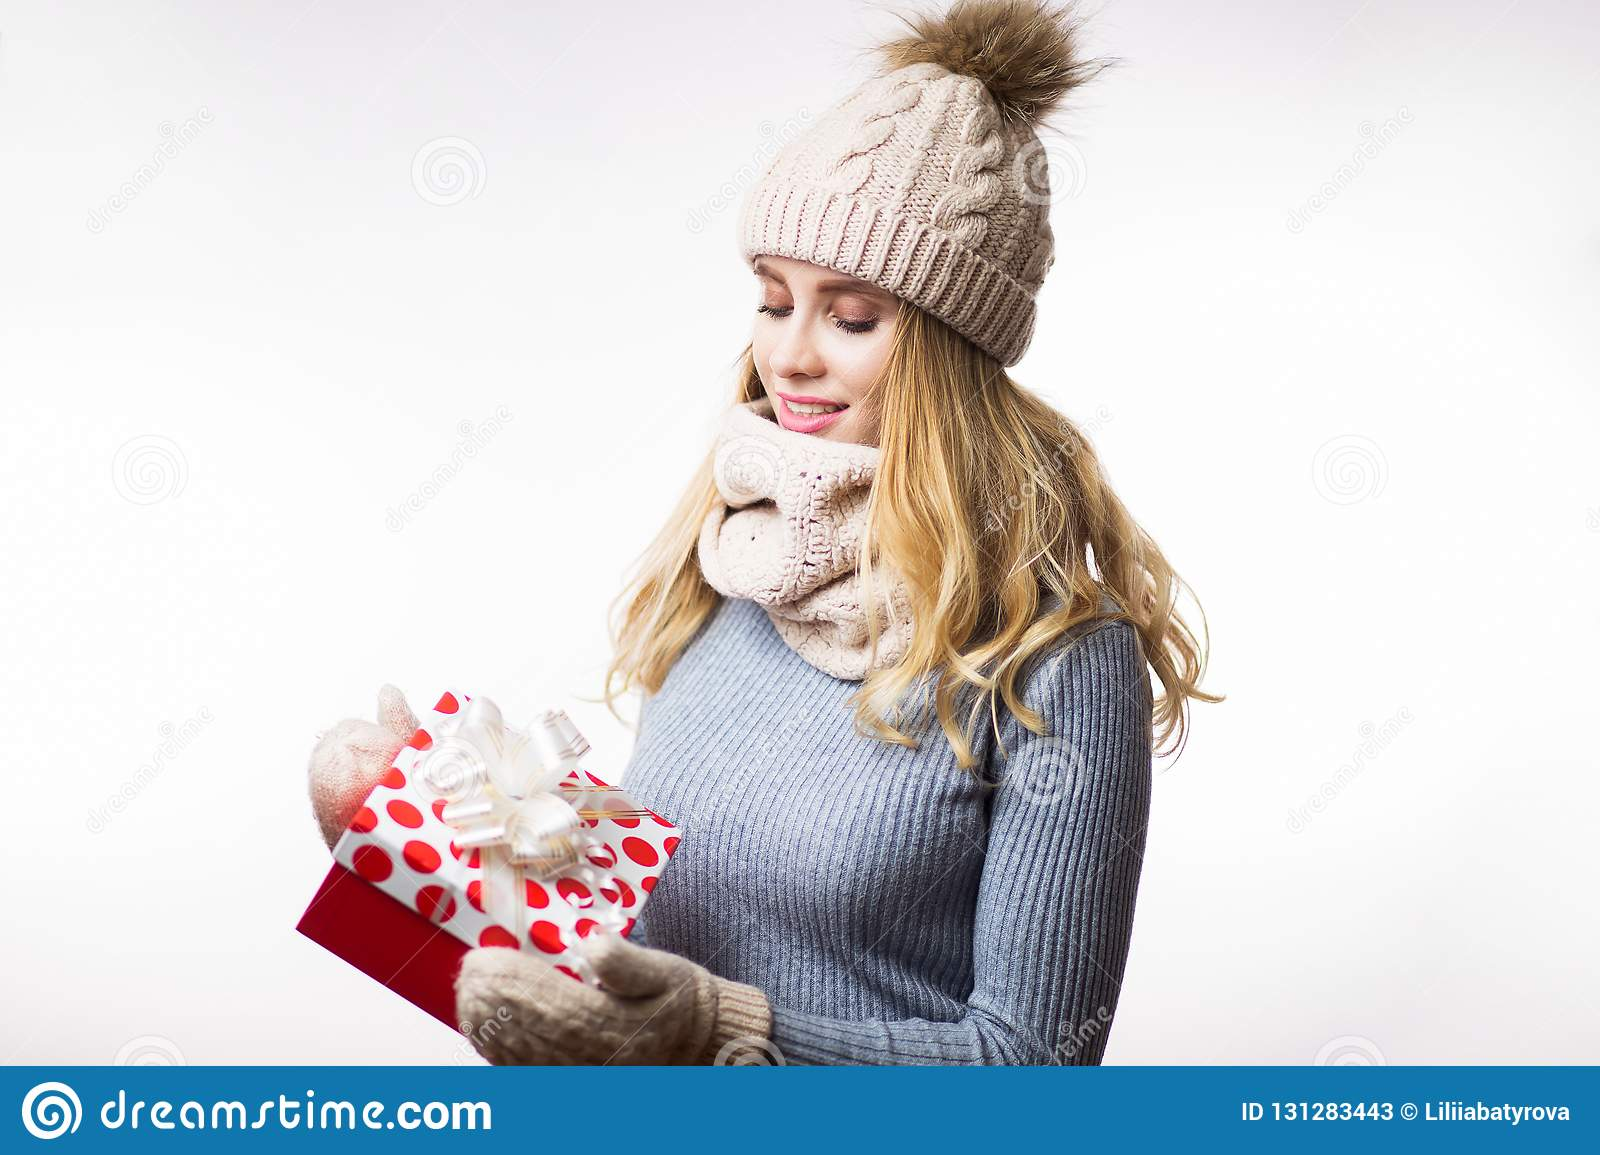 1c583533eab0 Beautiful young blonde woman in warm clothes with gift box on hand on white  background. Happy girl wearing beige knitted hat, scarf, mittens and grey  ...